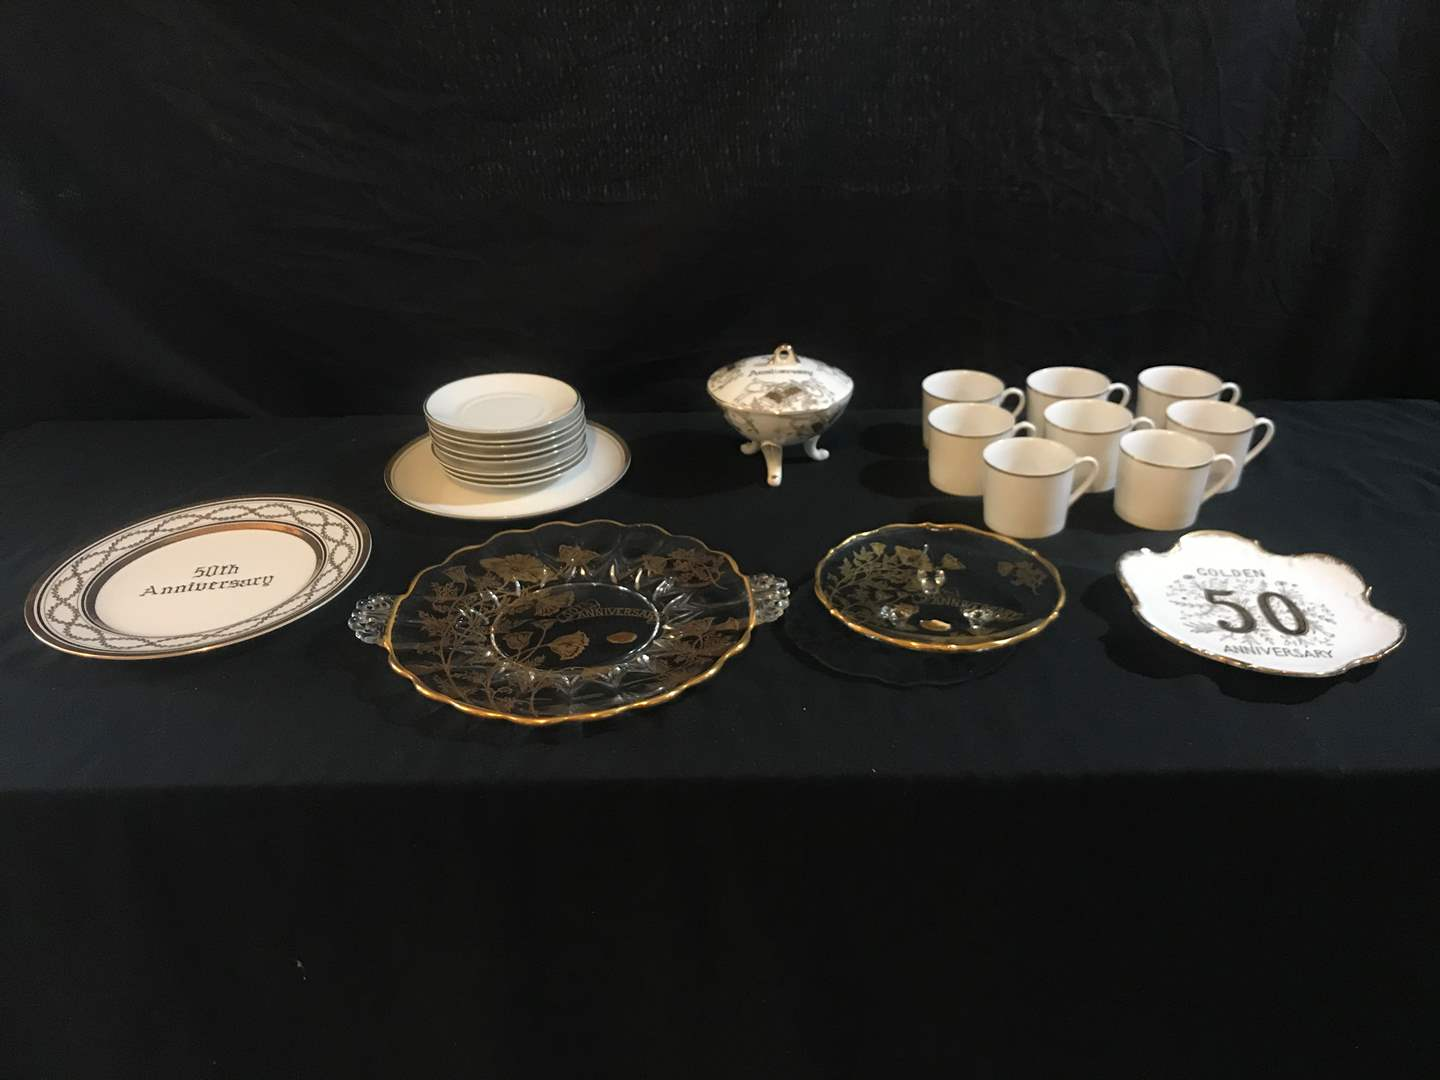 Lot # 66 - 50th Anniversary Dishes, Small Plates & Cups (main image)